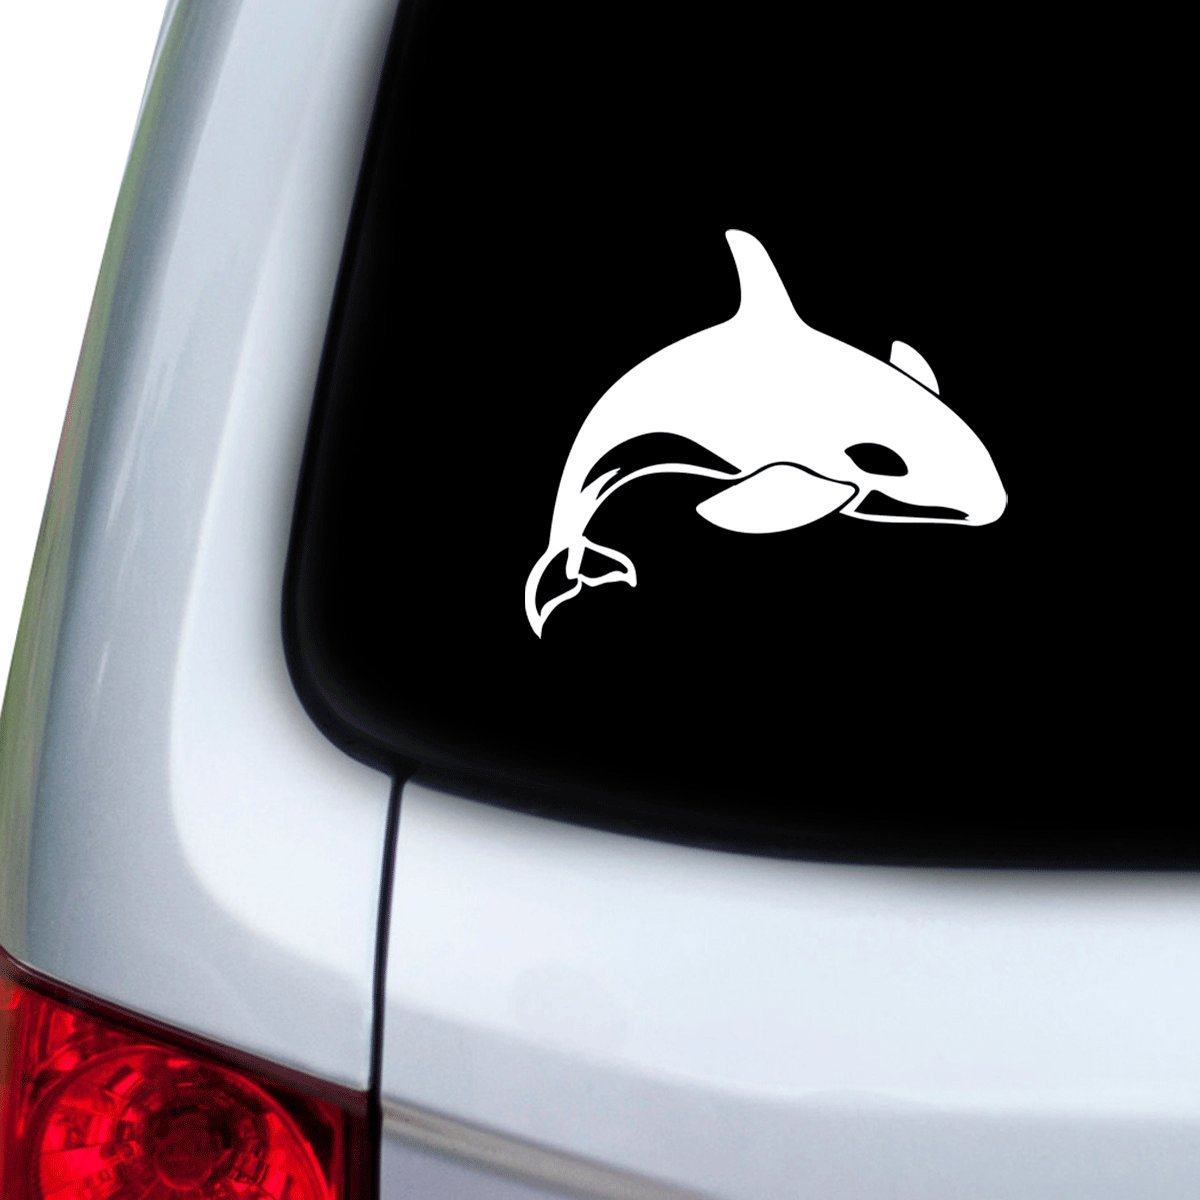 Hoods Doors White StickAny Car and Auto Decal Series Killer Whale Sticker for Windows